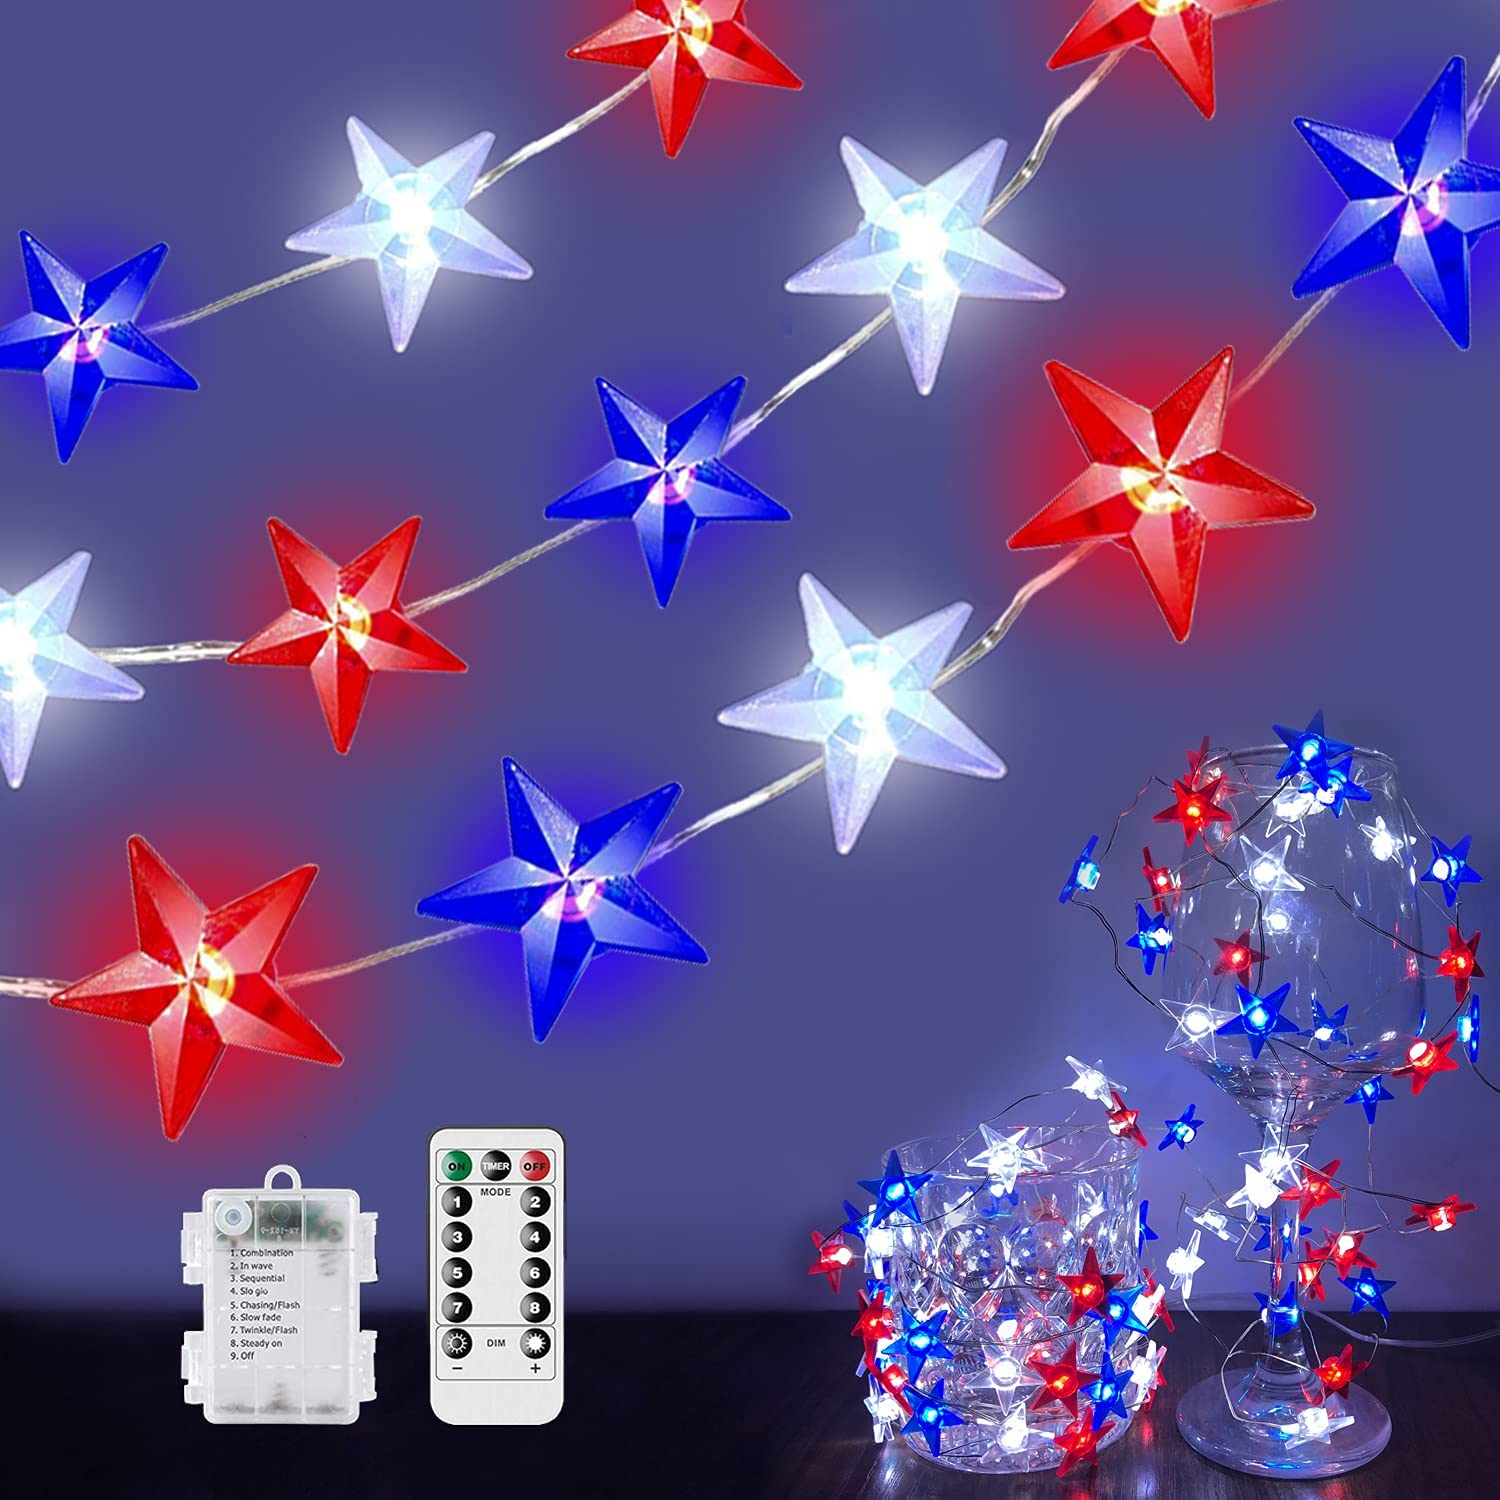 10Ft 40Led Patriotic Decor Star String Lights, 4th of July Red White Blue Star Lights American Flag Decorations Indoor Outdoor Memorial Day Independence Day Party Supplies Battery Operated with Remote